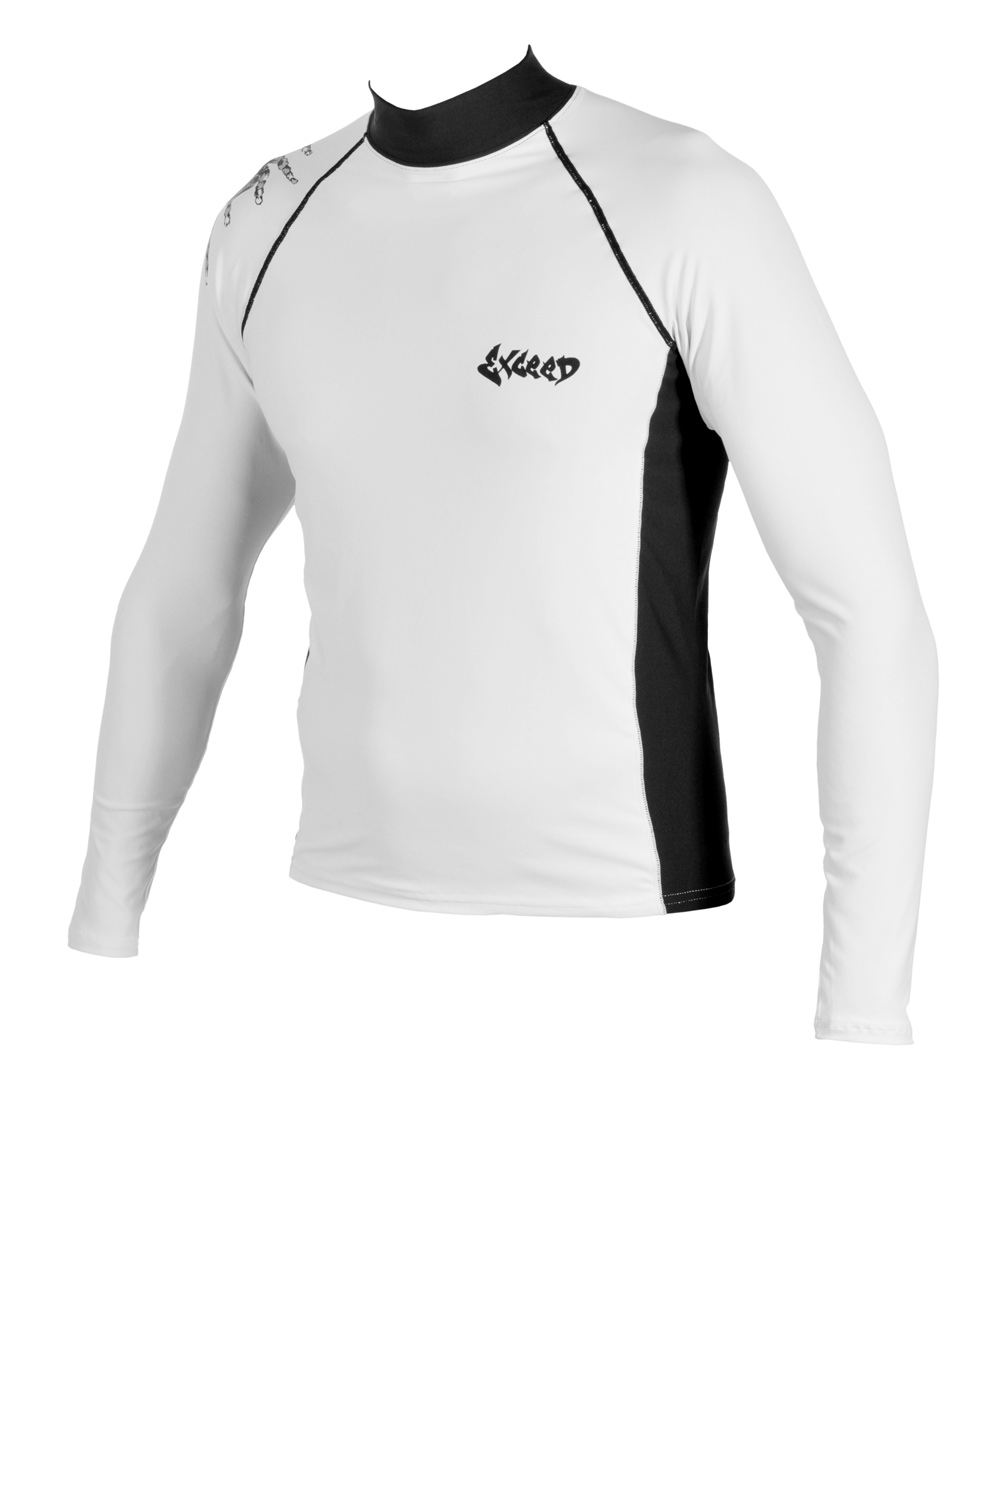 Exceed Entrap L/S Mens Long Sleeve Rash Guard